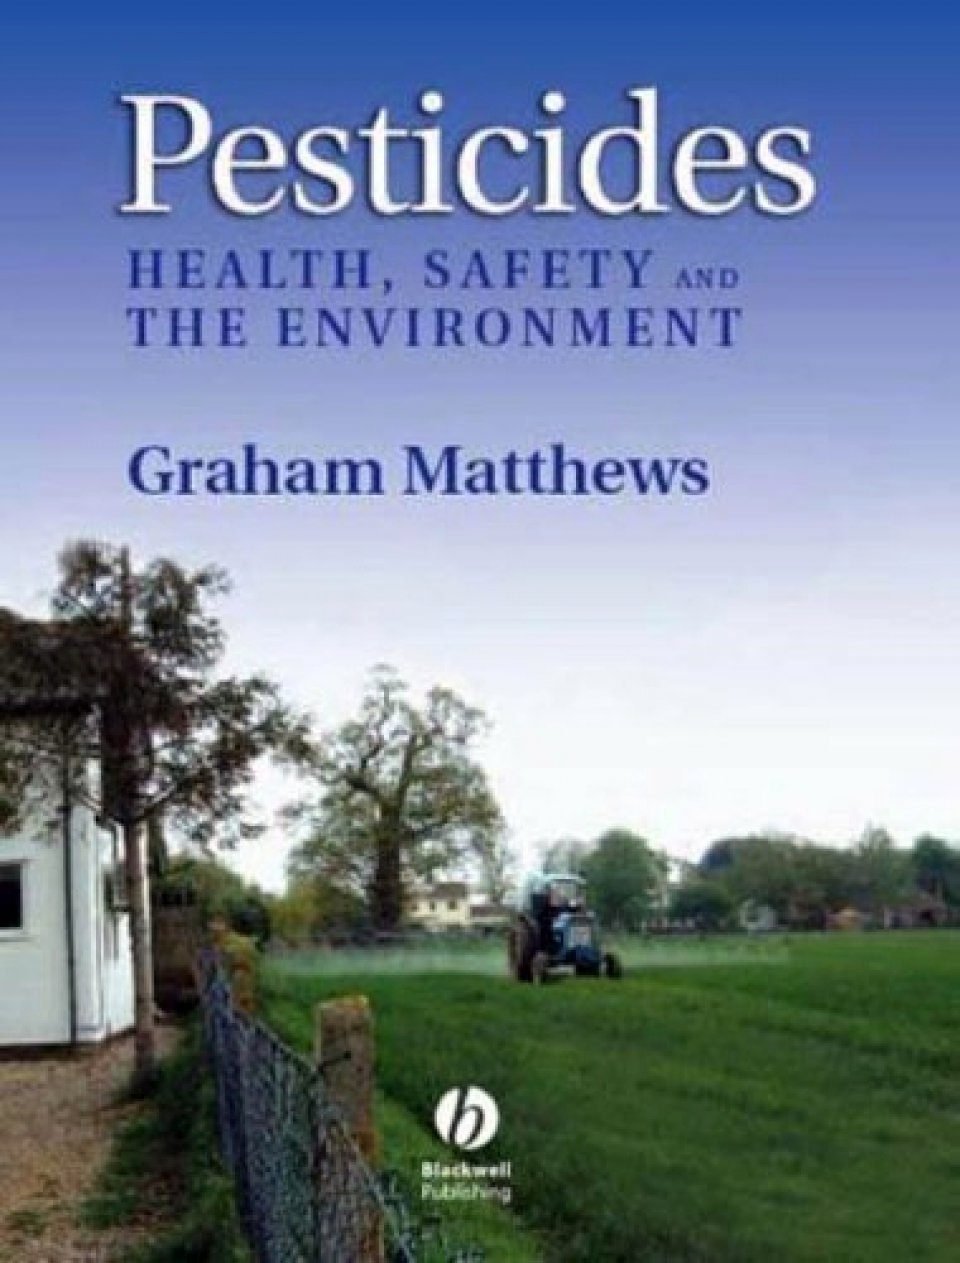 Pesticides: Health, Safety and the Environment